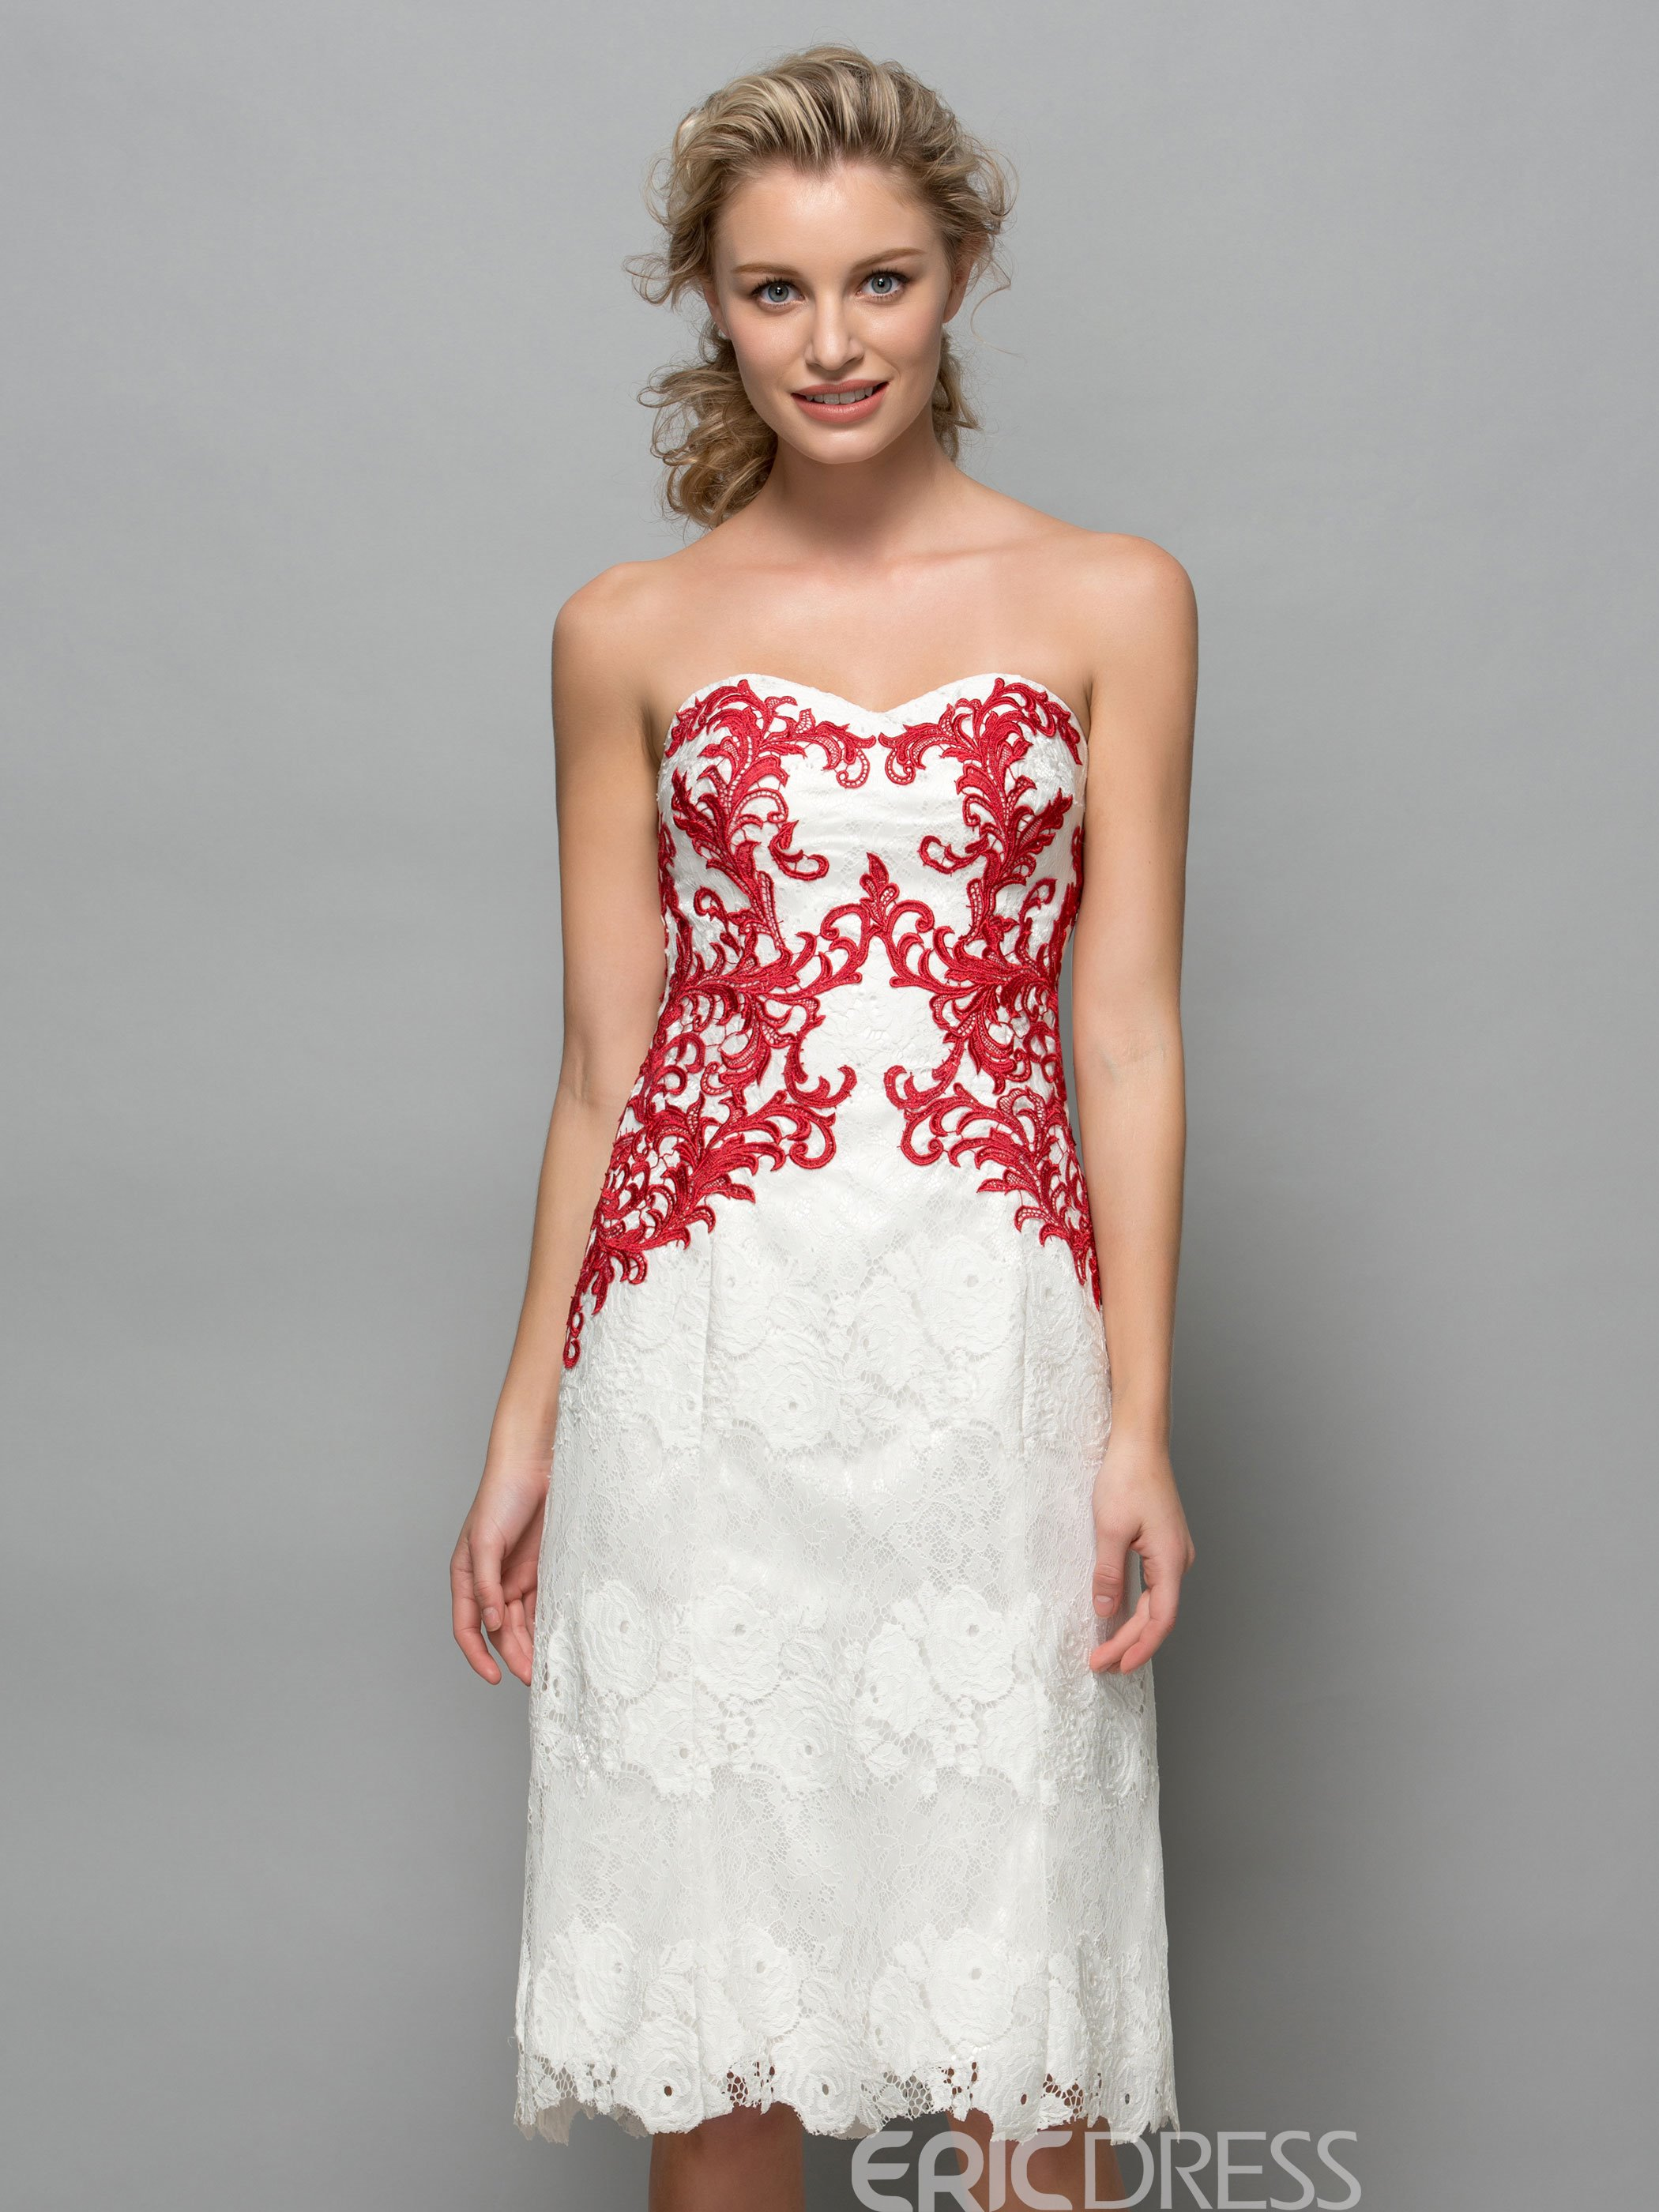 Ericdress Sweetheart Hollow Appliques Knee-Length Lace Cocktail Dress